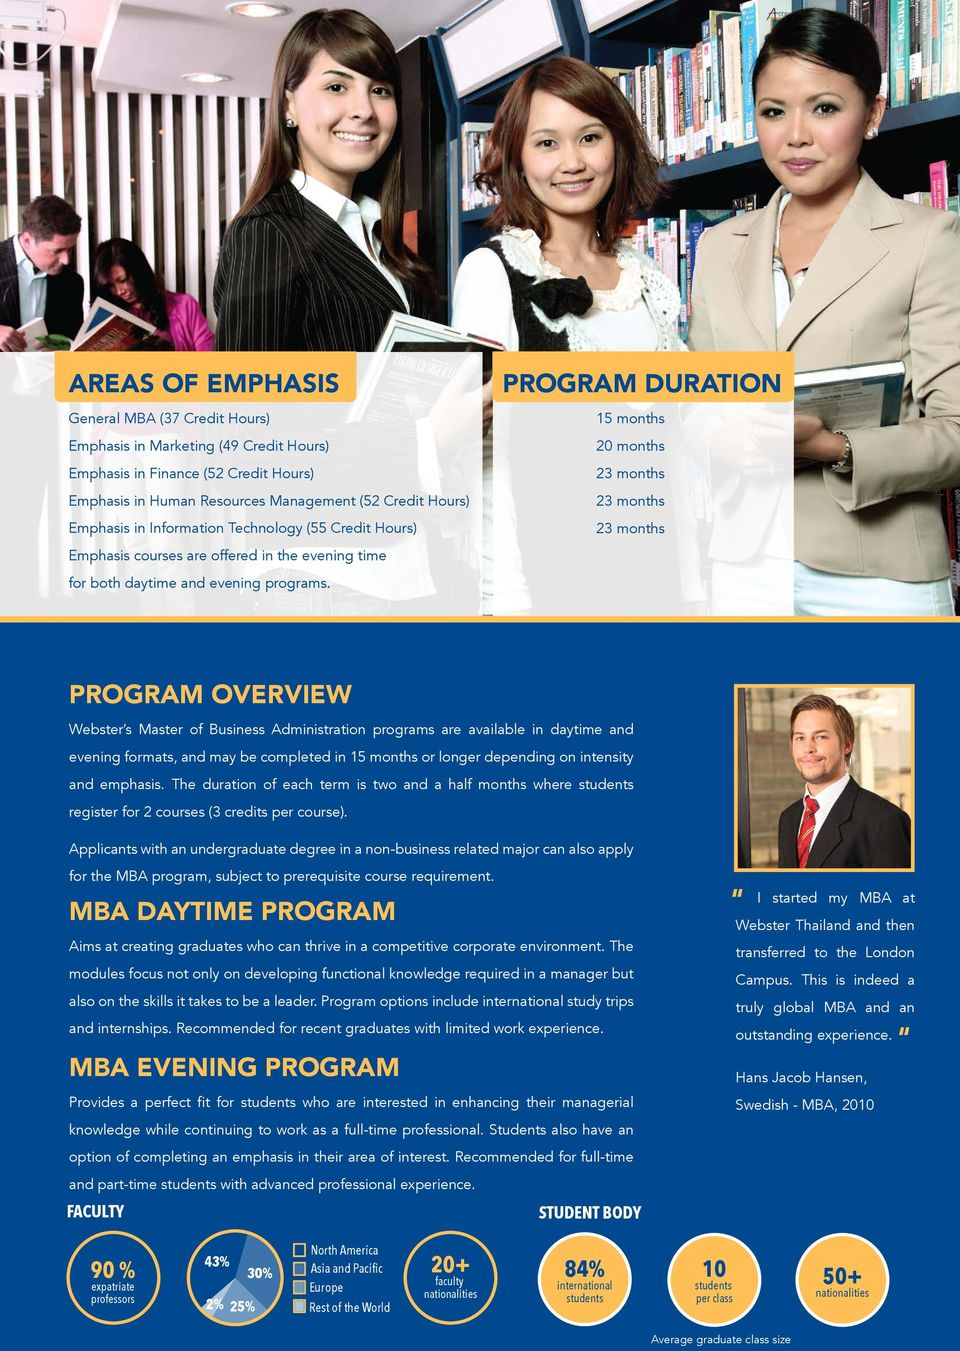 PROGRAM DURATION 15 months 20 months 23 months 23 months 23 months PROGRAM OVERVIEW Webster s Master of Business Administration programs are available in daytime and evening formats, and may be